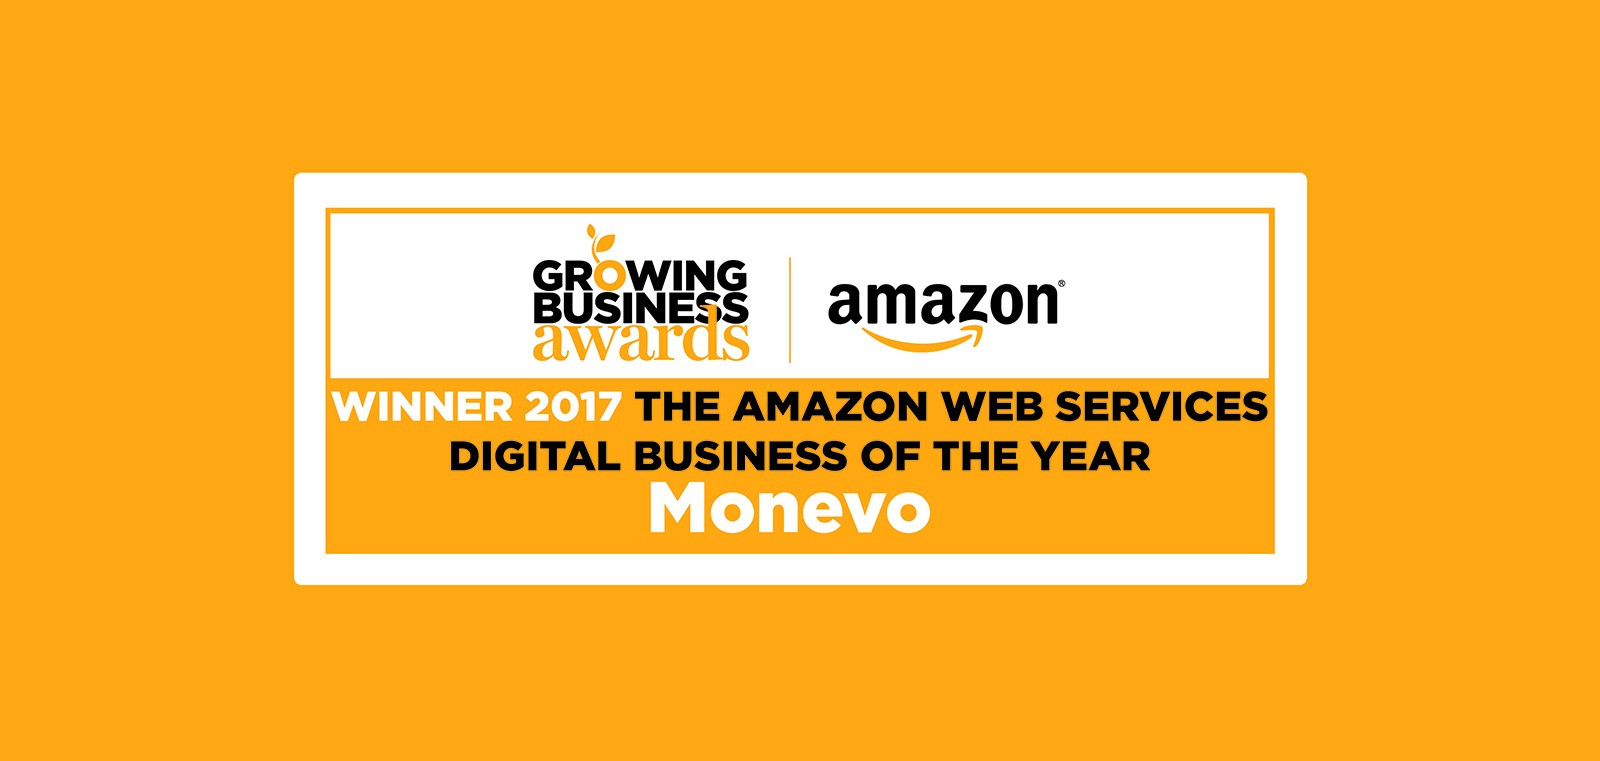 Monevo Hailed as Digital Business of the Year